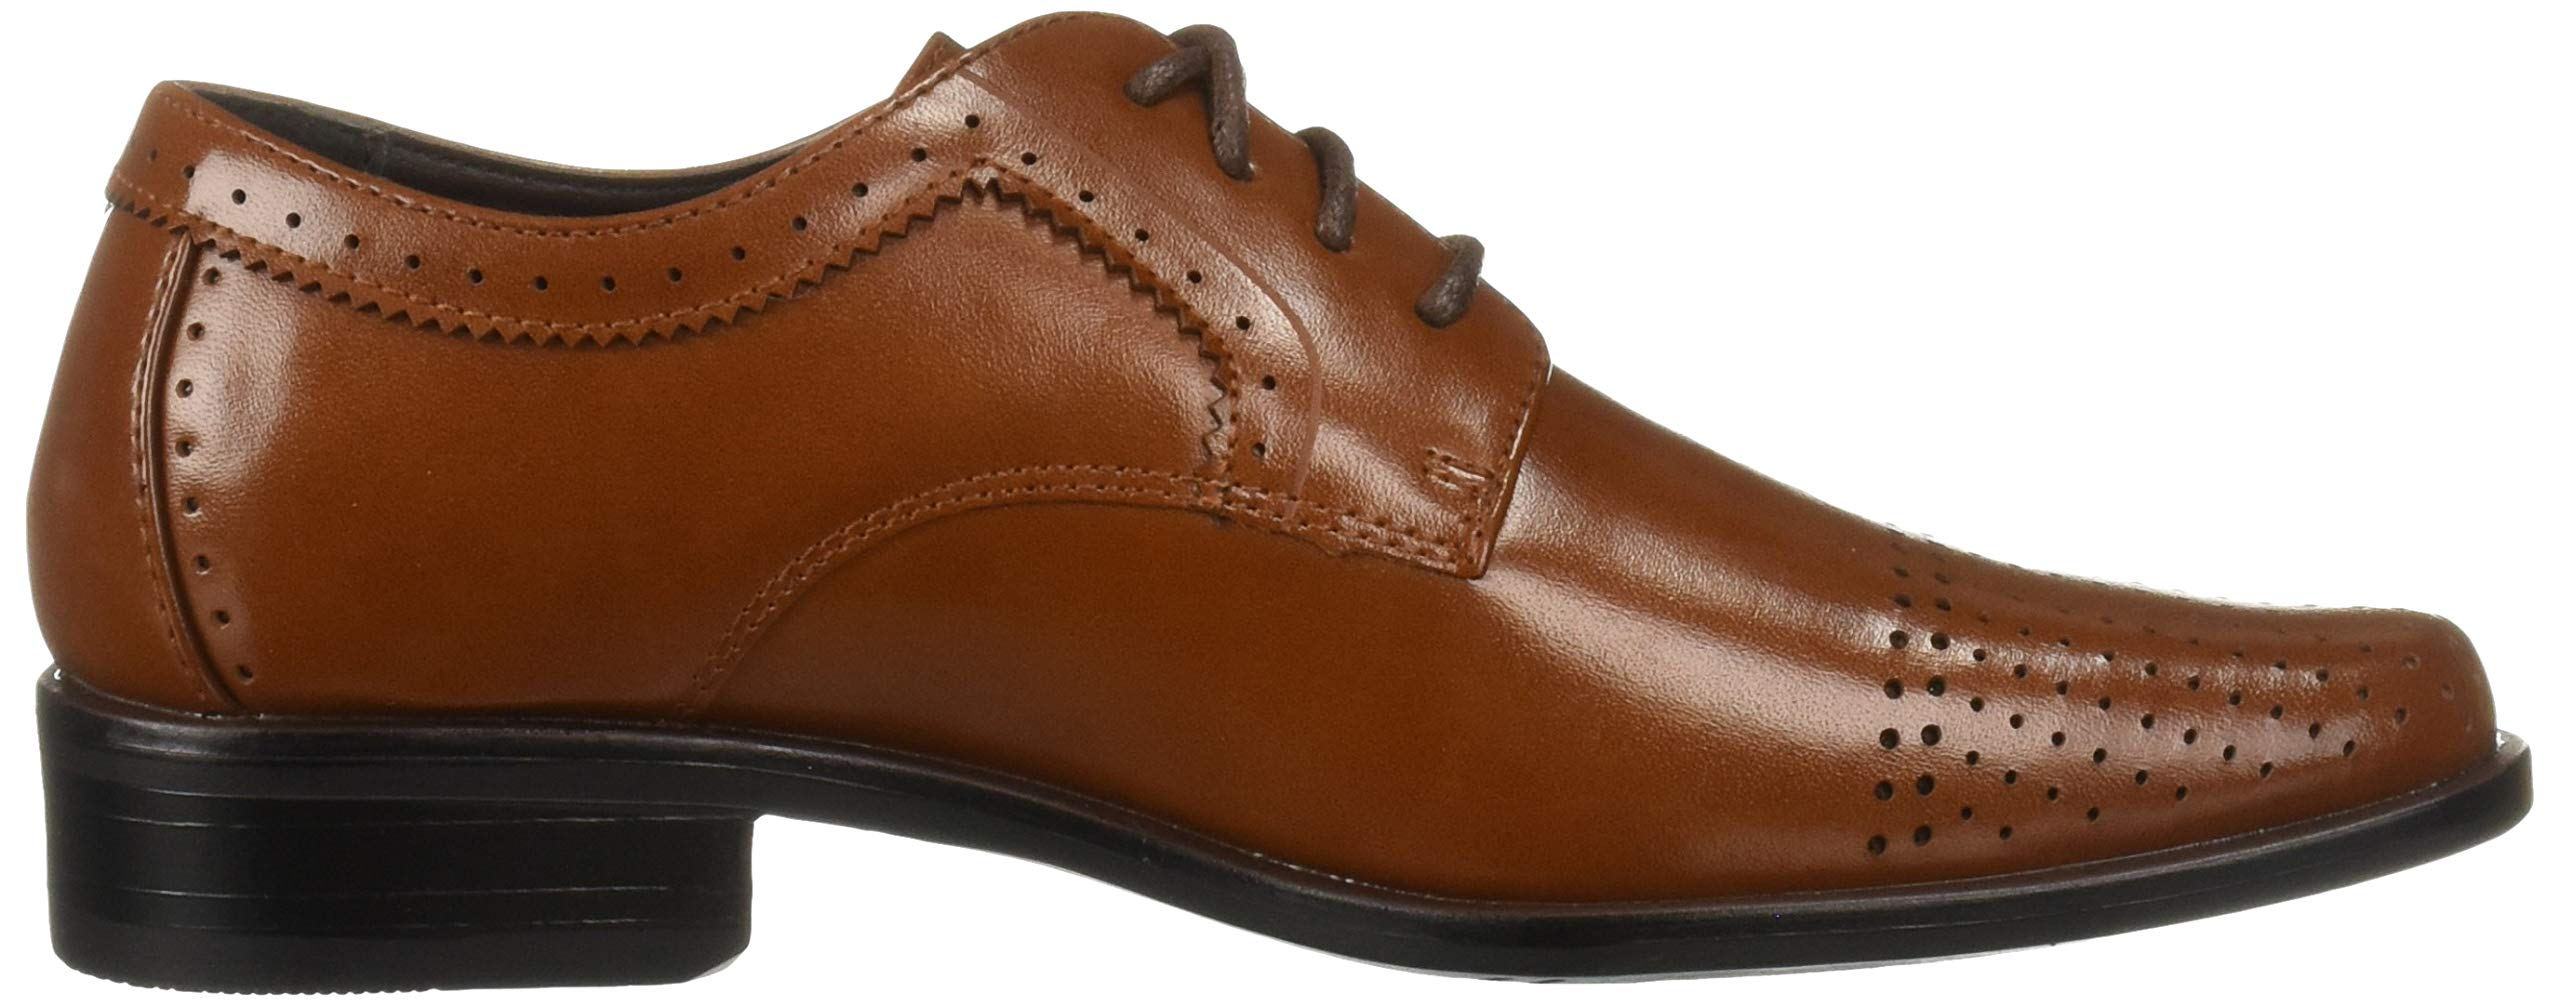 STACY ADAMS Unisex Sanborn Perfed Cap Toe Lace-Up Oxford, Cognac 5 M US Big Kid by STACY ADAMS (Image #7)